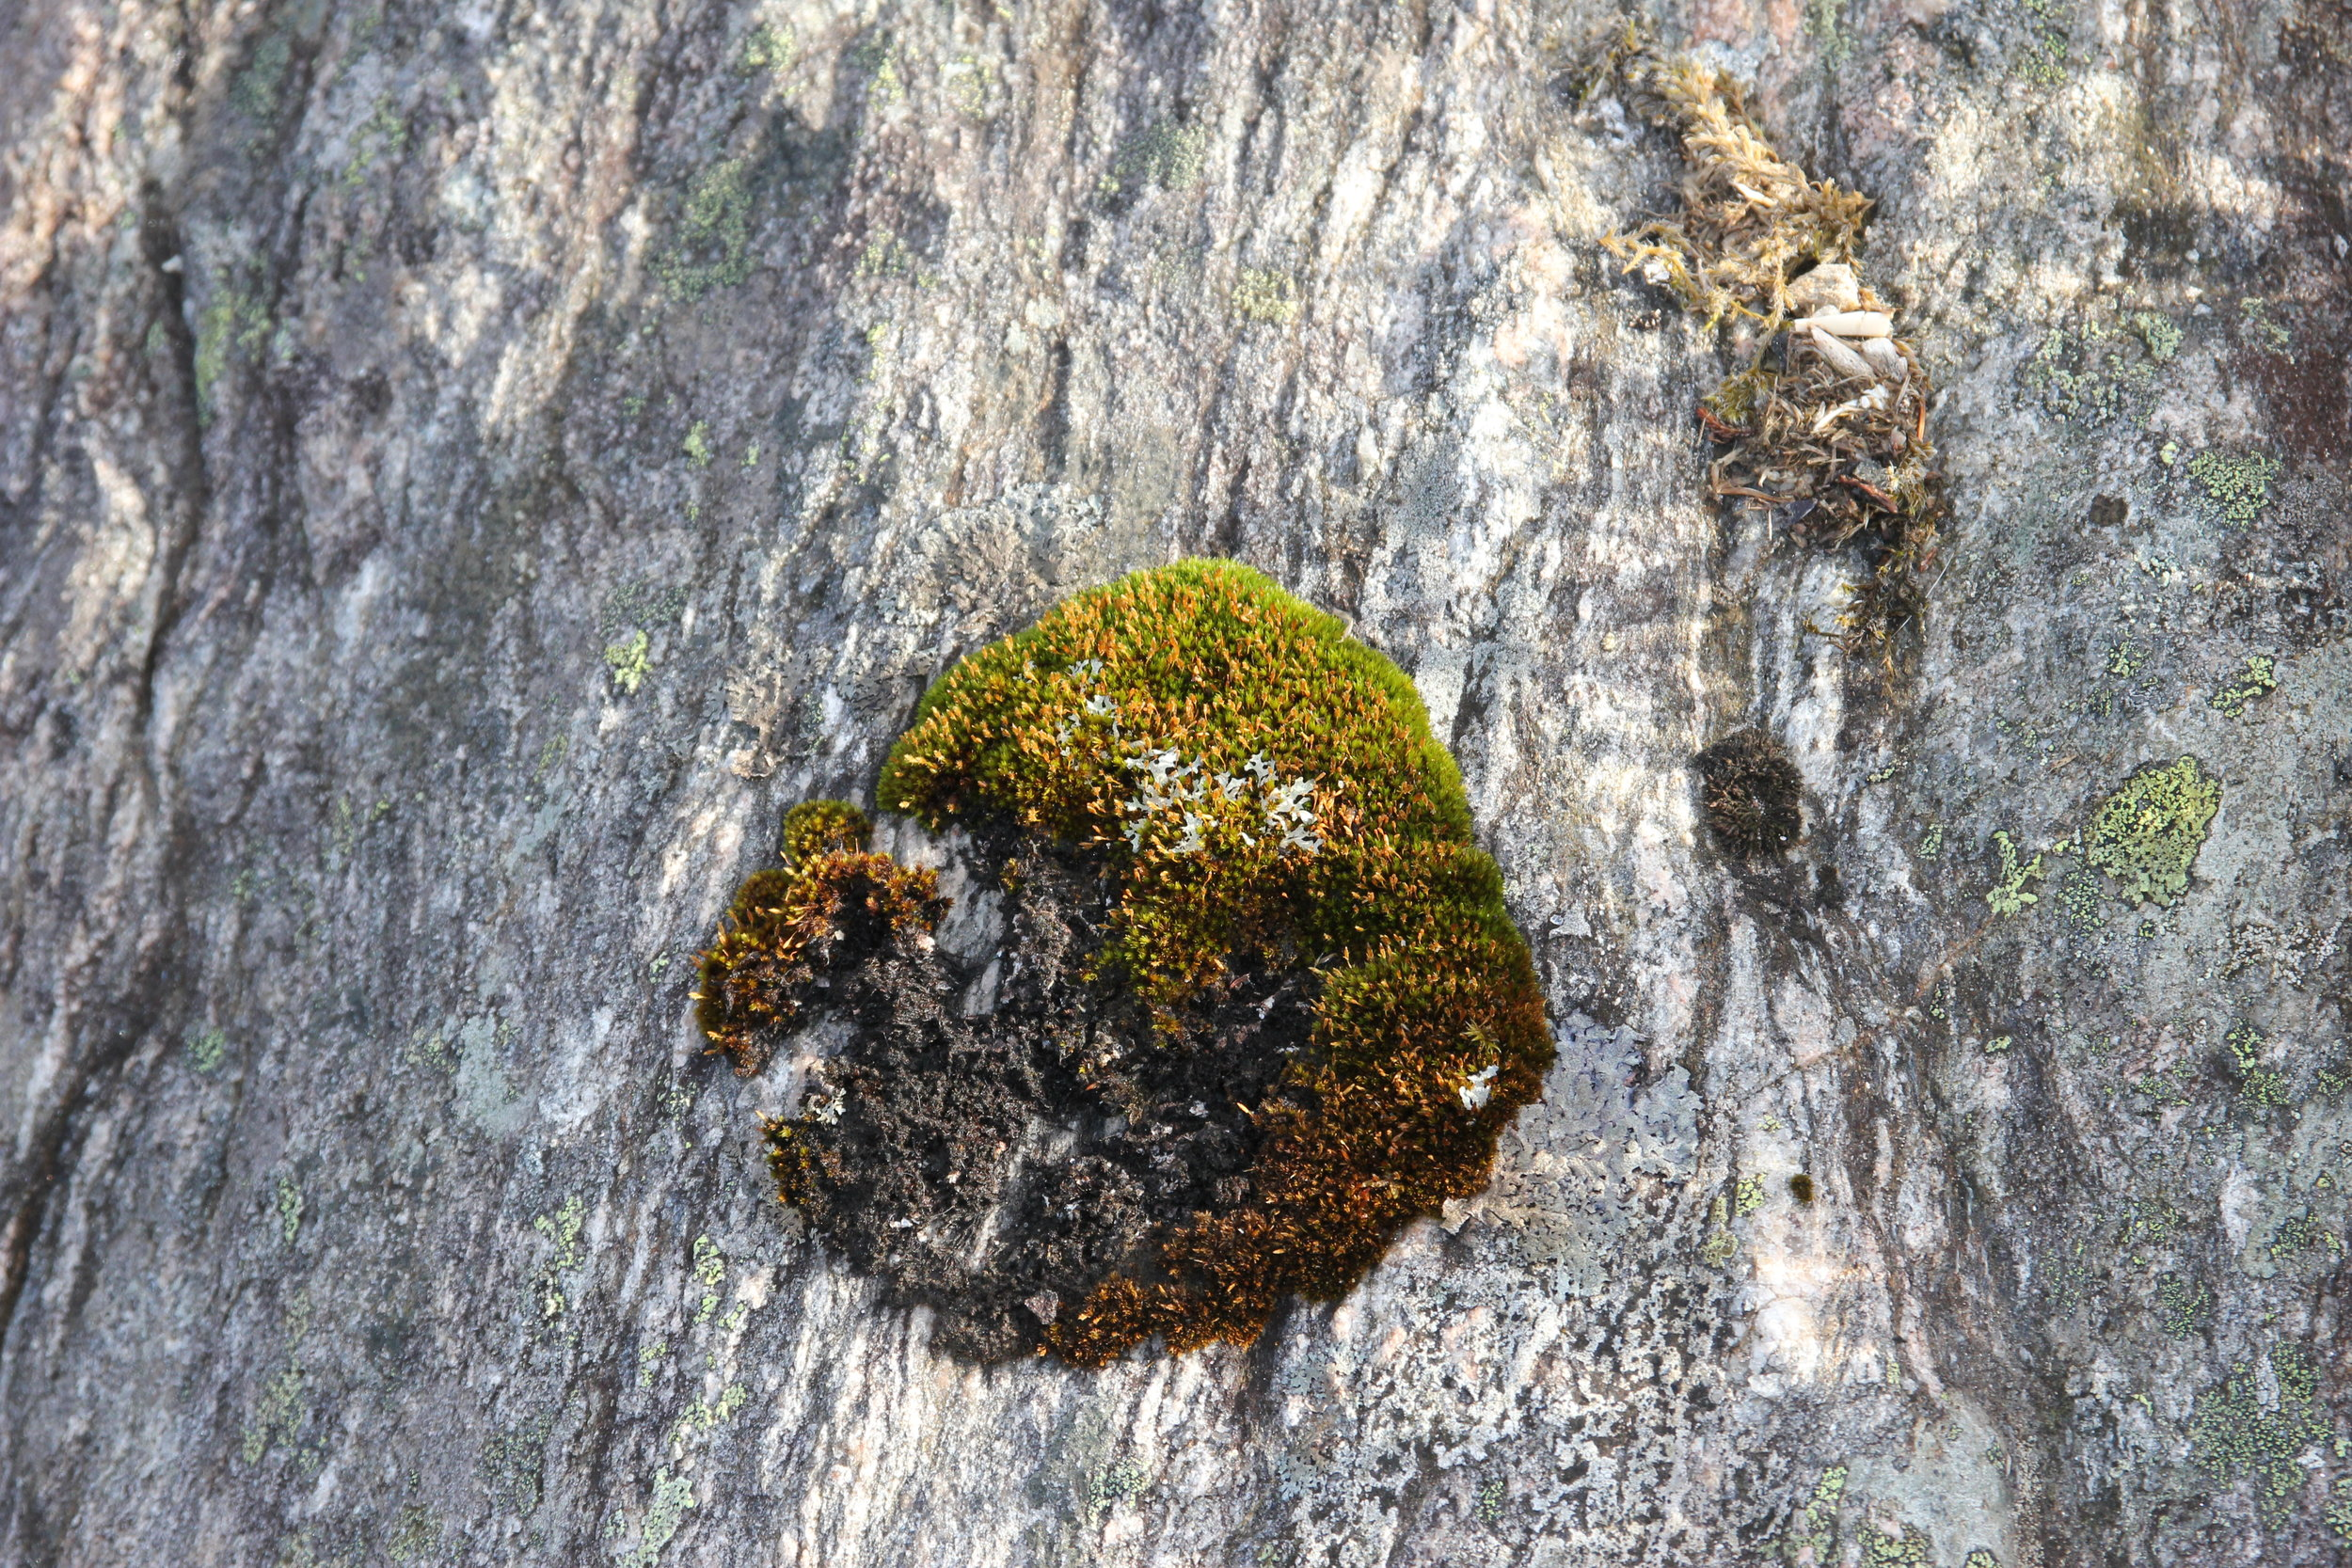 Moss and Lichen on Rocks in the Forest.